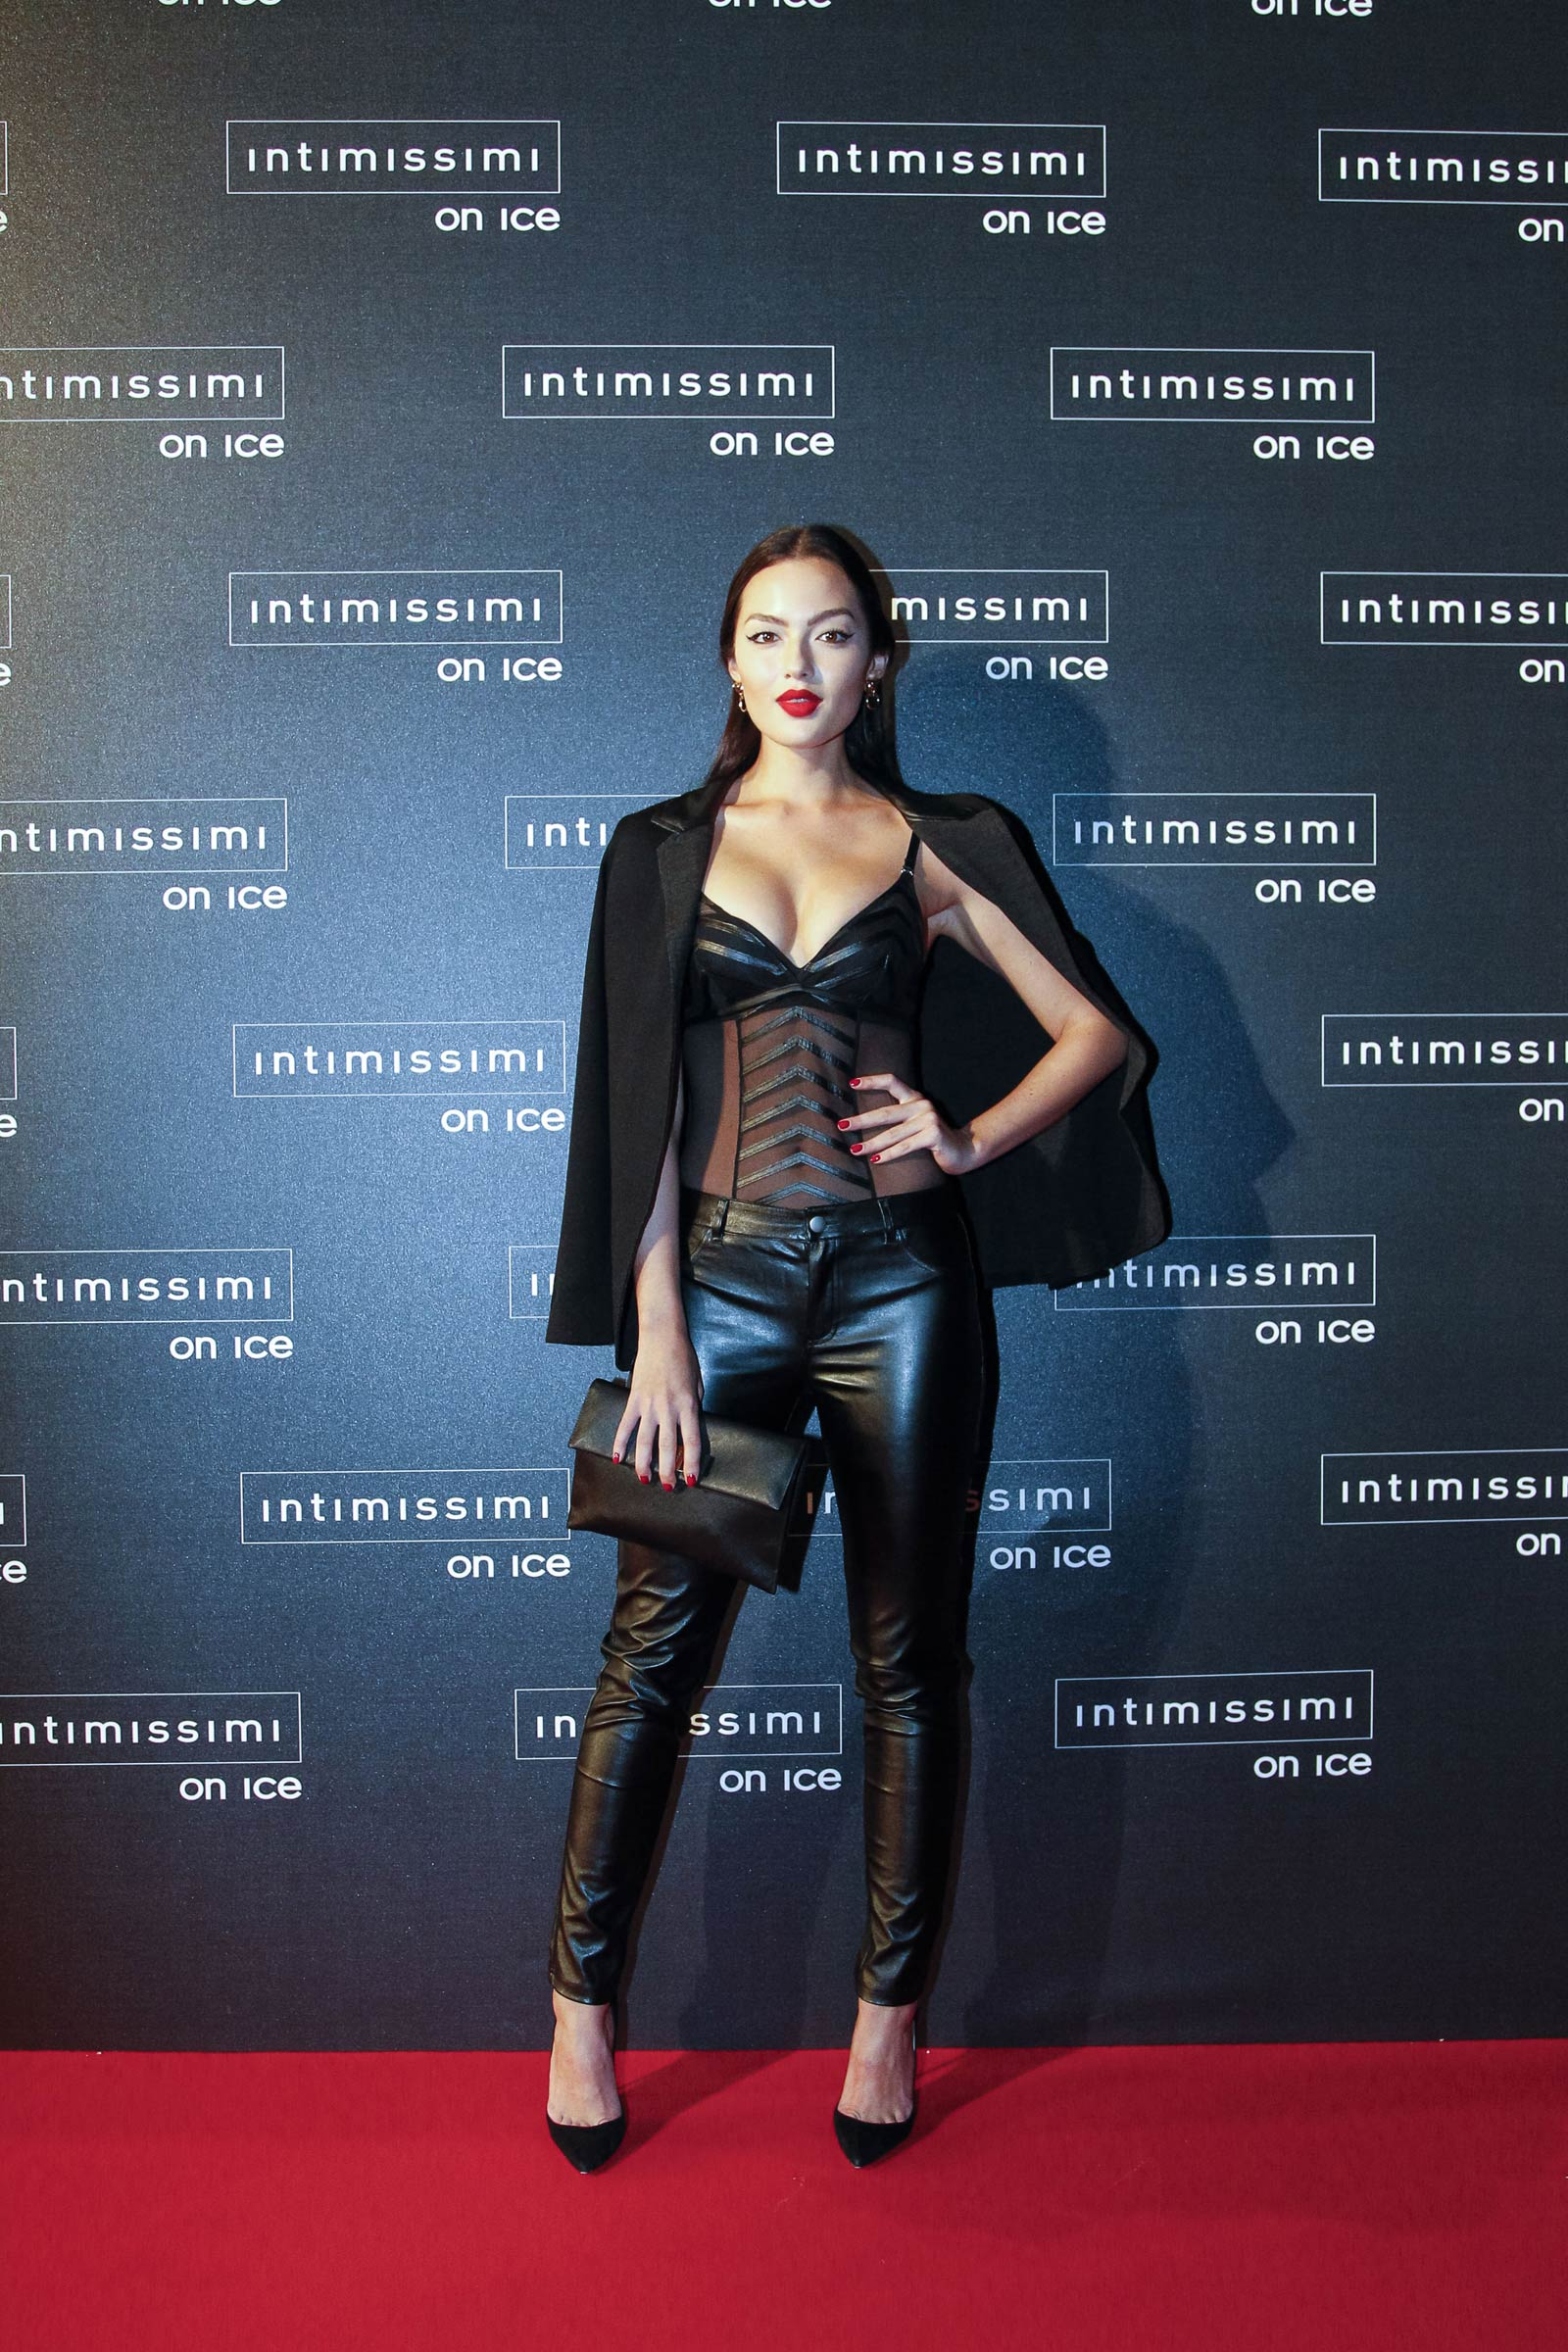 Mia Kang attends Intimissimi On Ice 2015